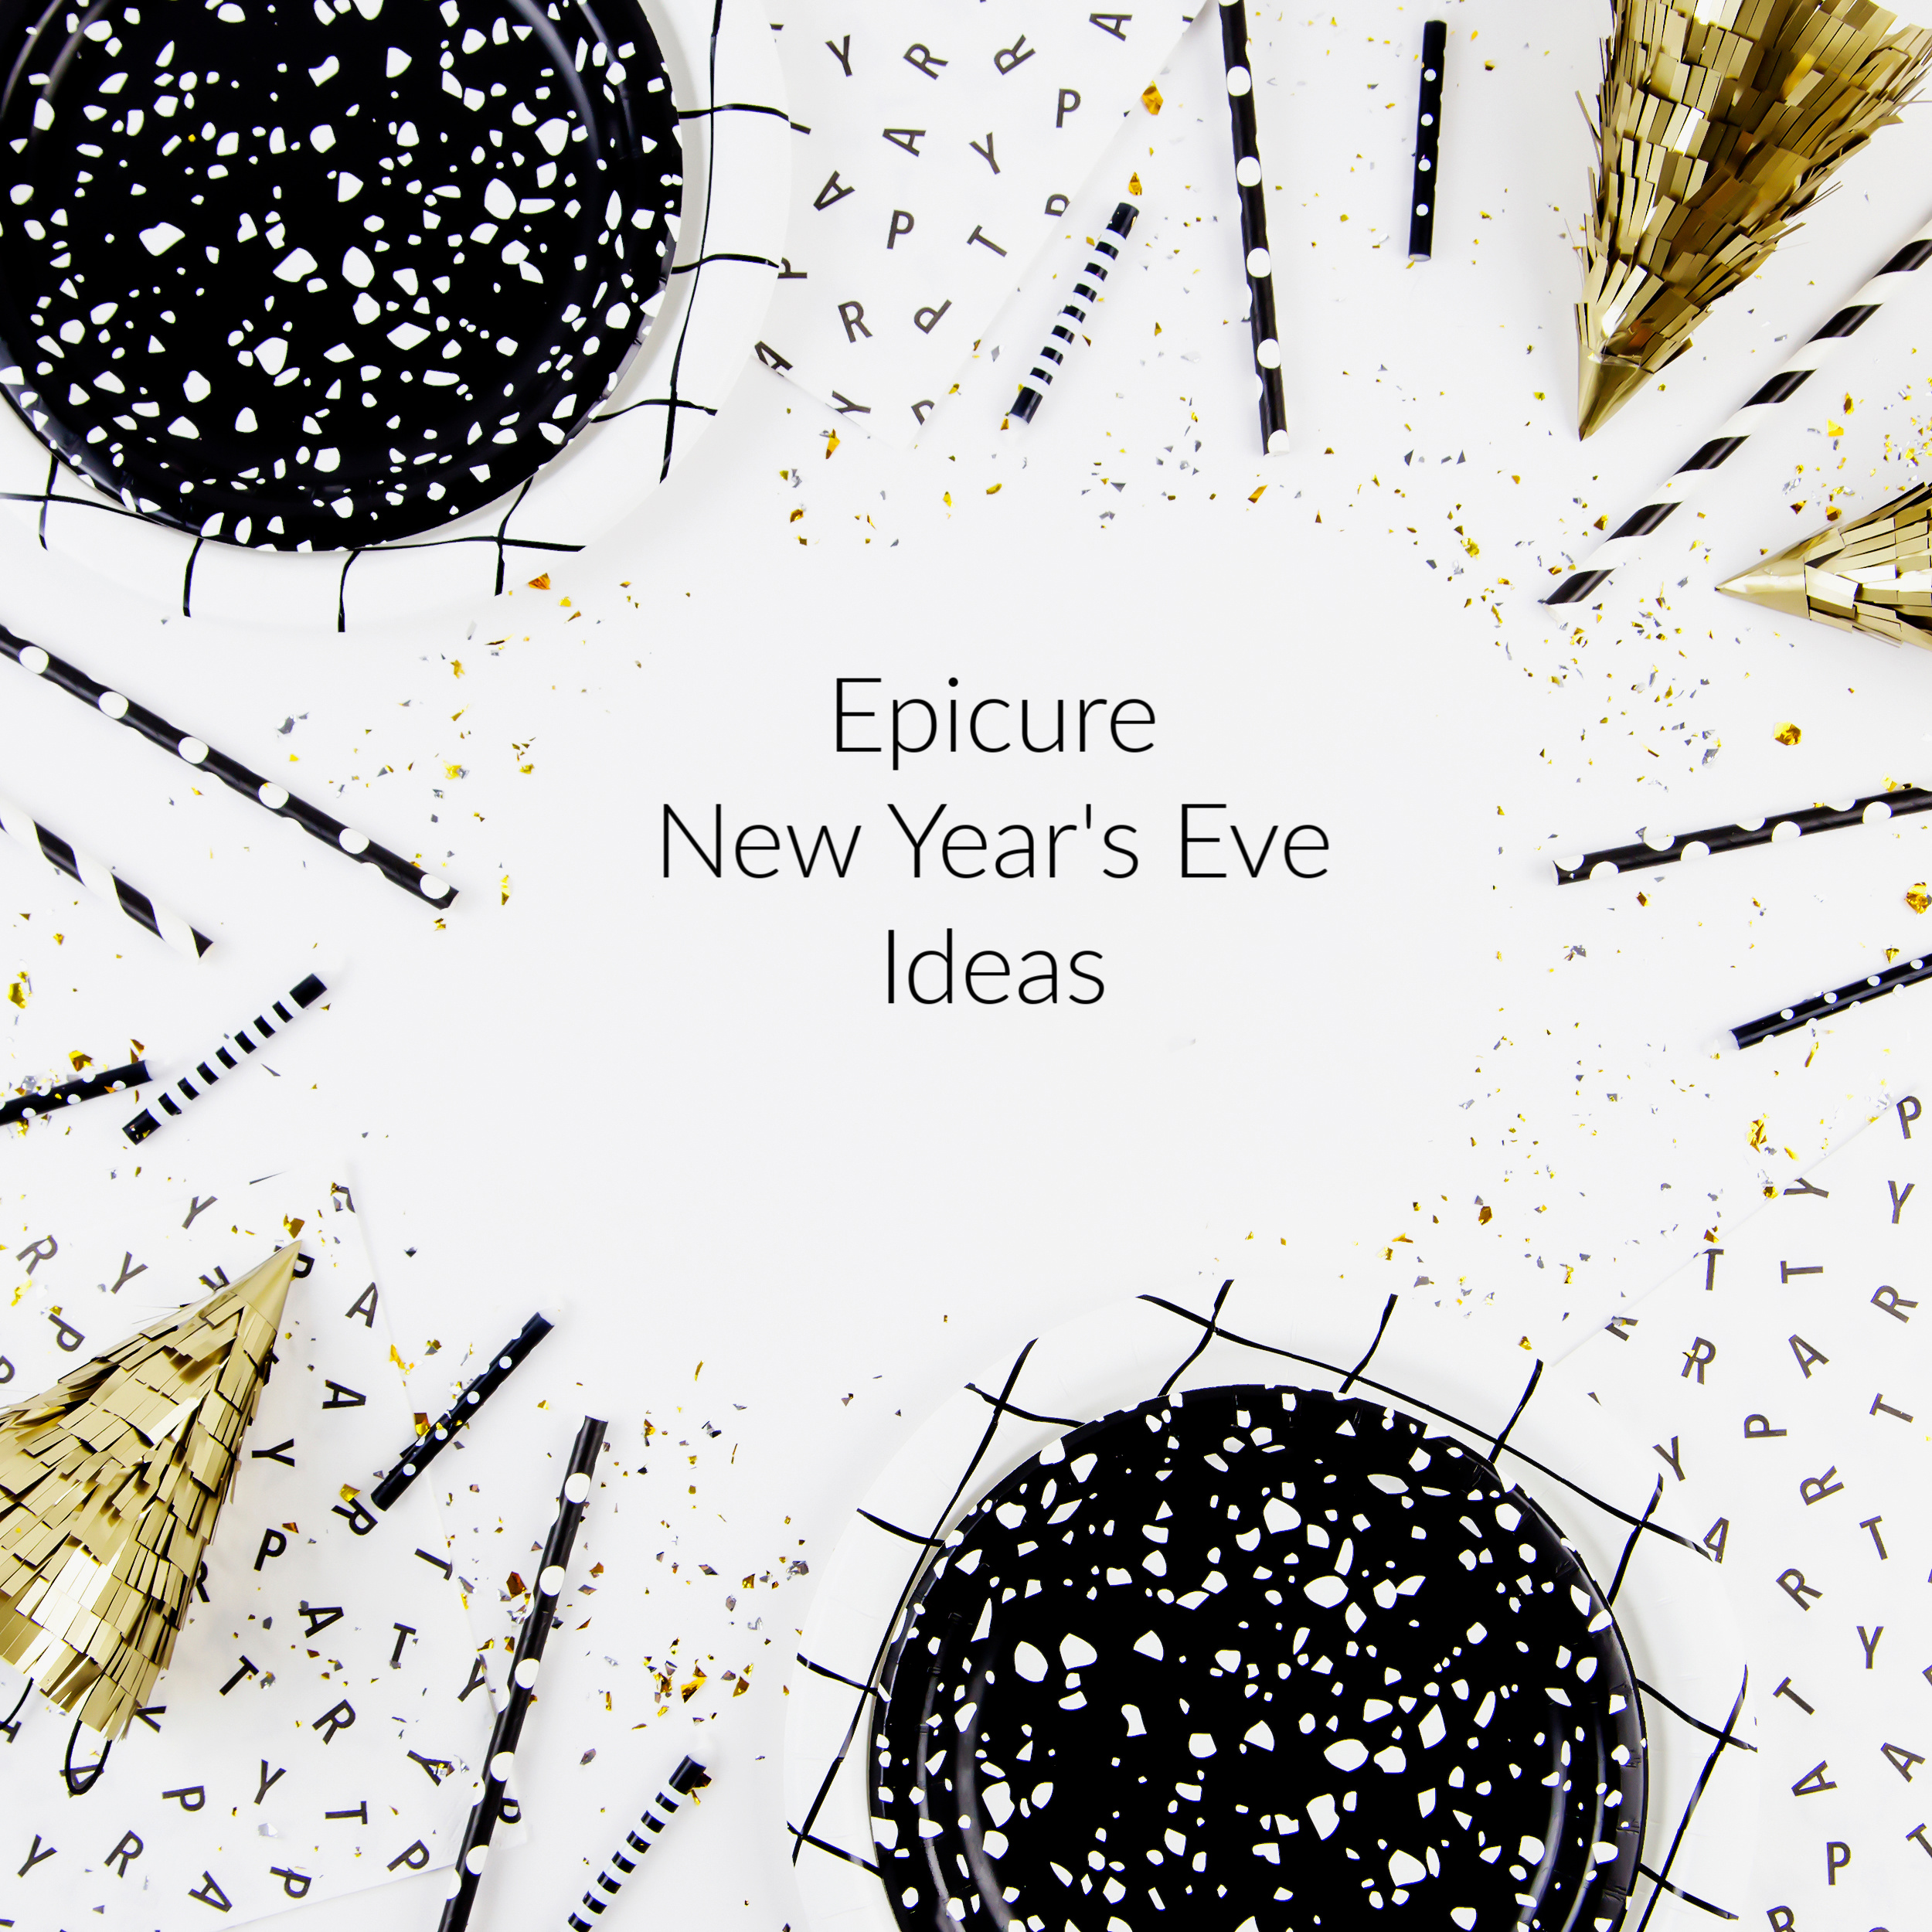 Epicure New Year's Eve ideas